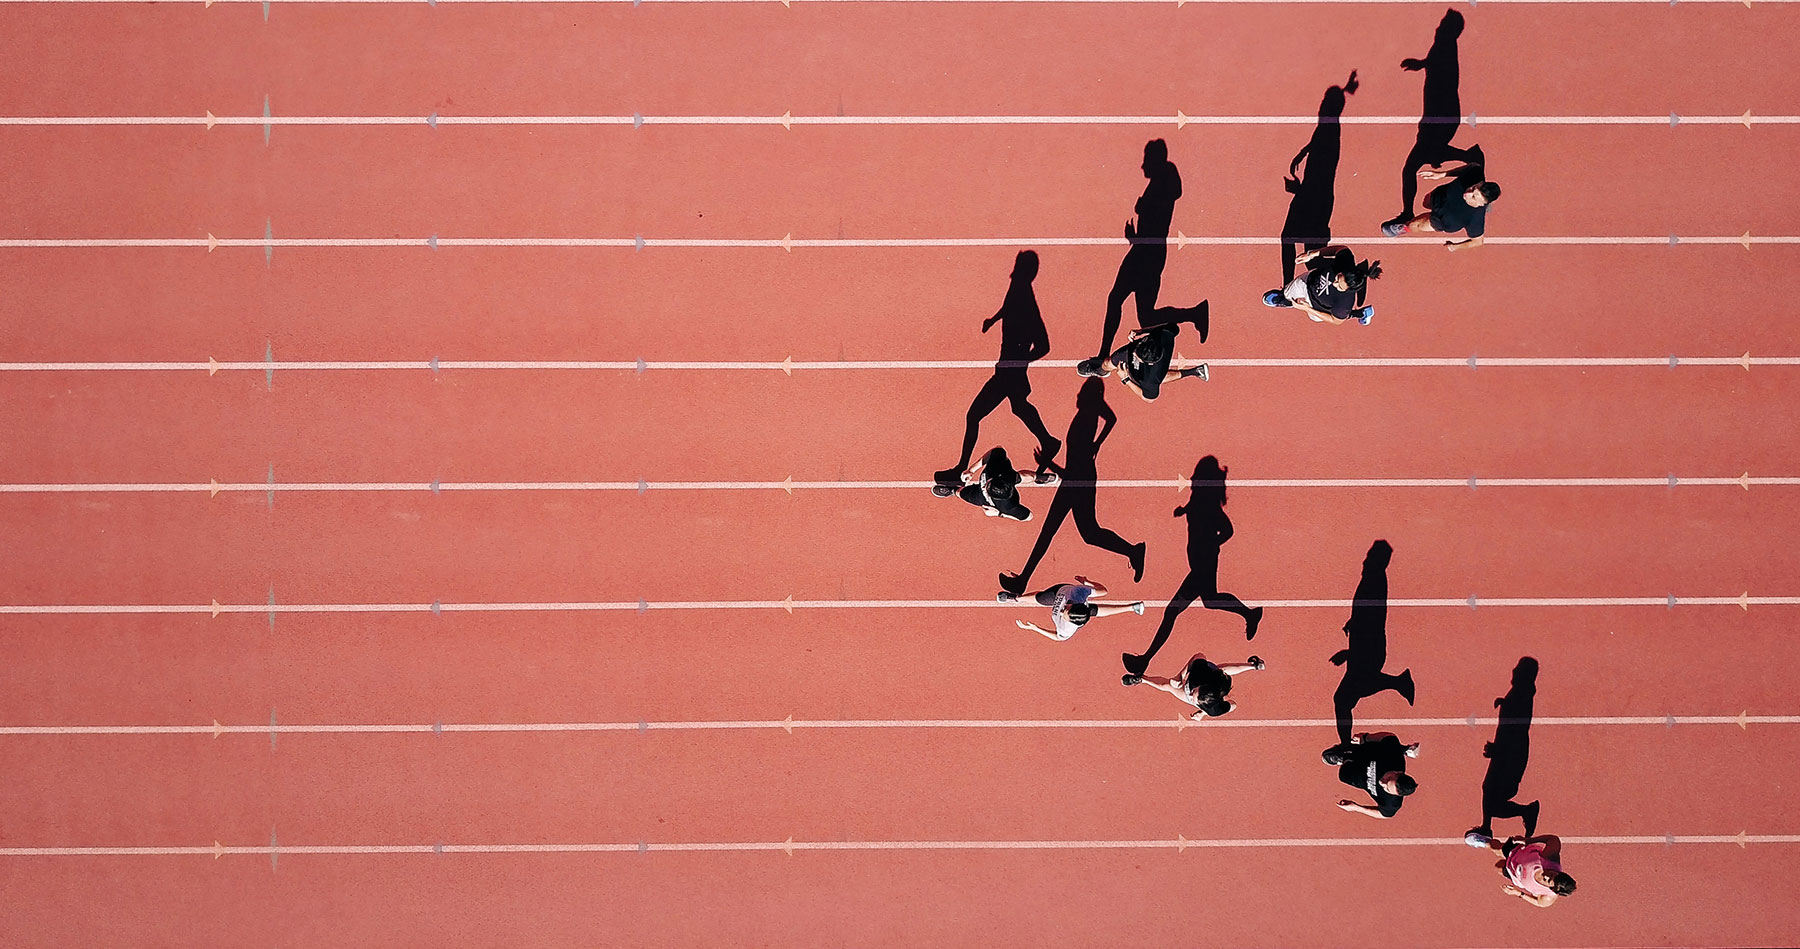 Runners on a running track